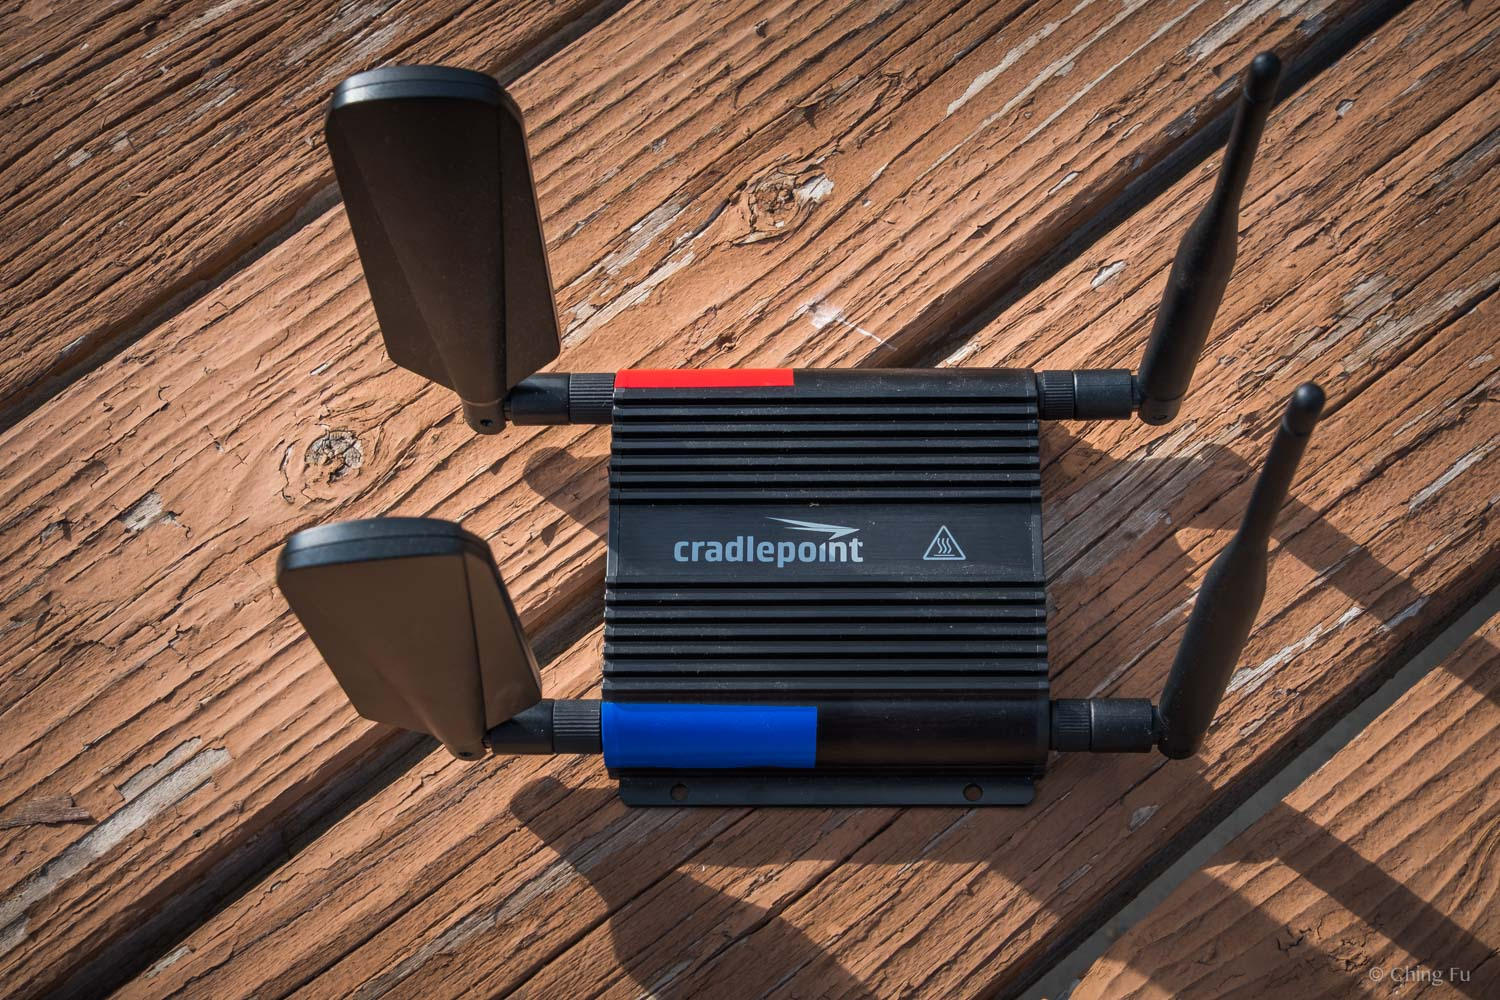 This Cradlepoint router is actually smaller than the MOFI router. We placed the red and blue tape to remind us where the coax cables need to go. The Cradlepoint also comes with paddle antennas.